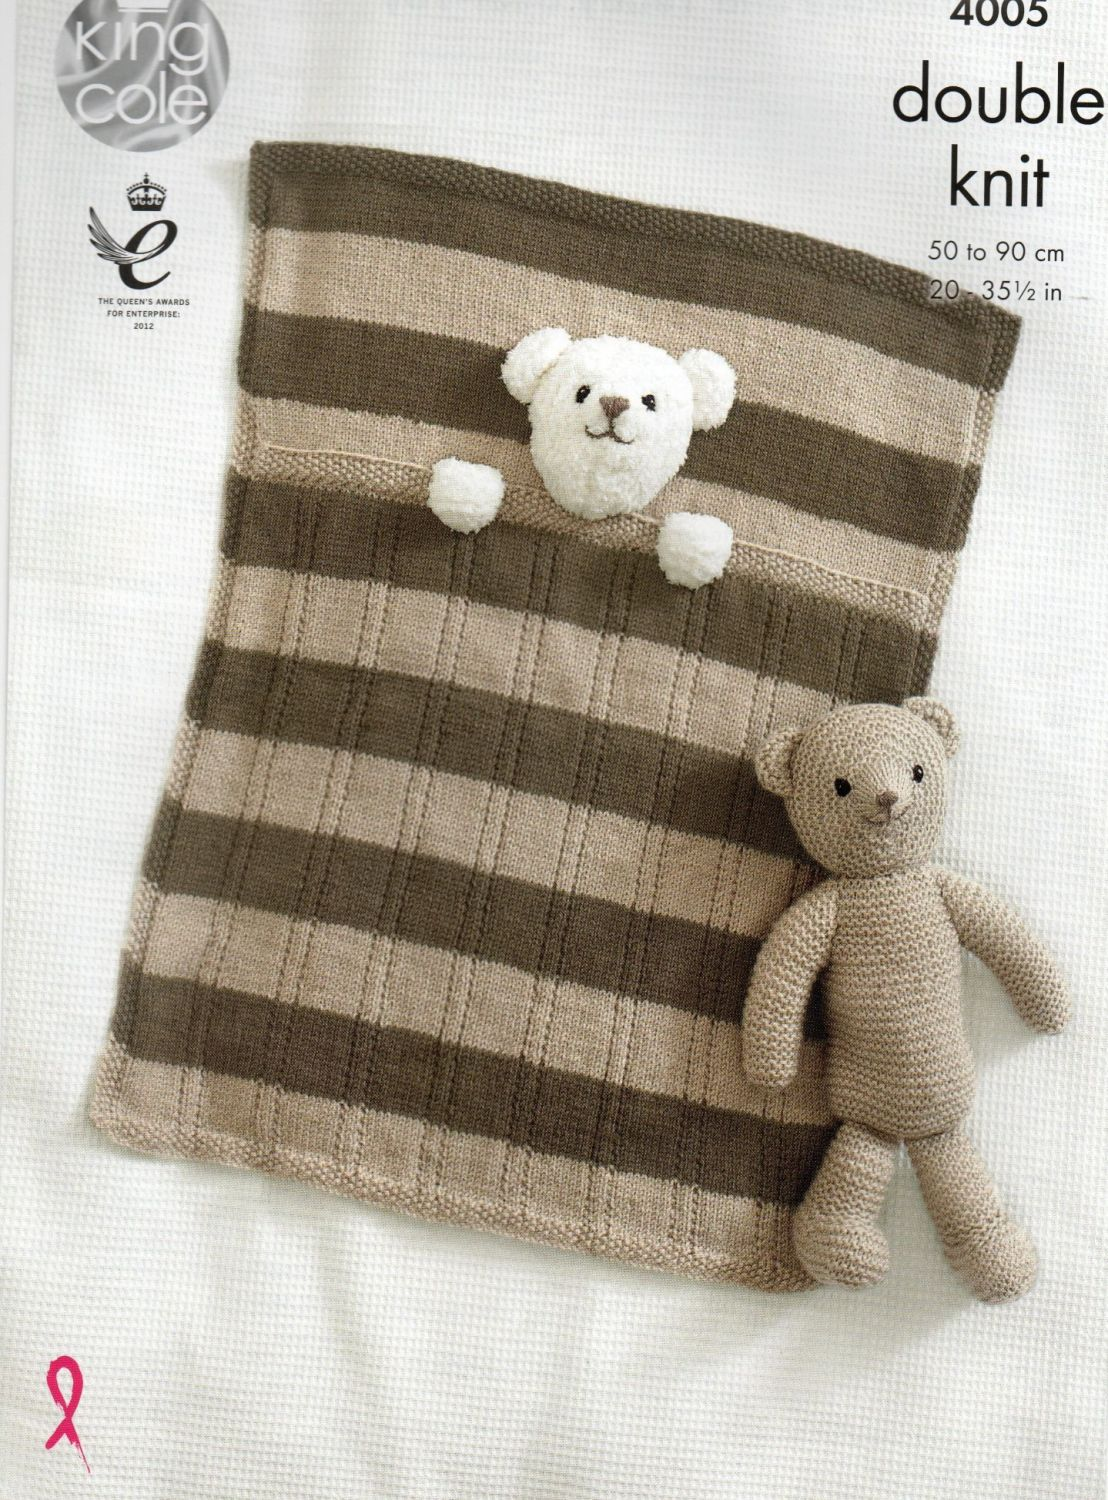 4005 - BABY BLANKETS AND TEDDY BEAR TOY BY KNIG COLE IN DOUBLE KNIT YARN